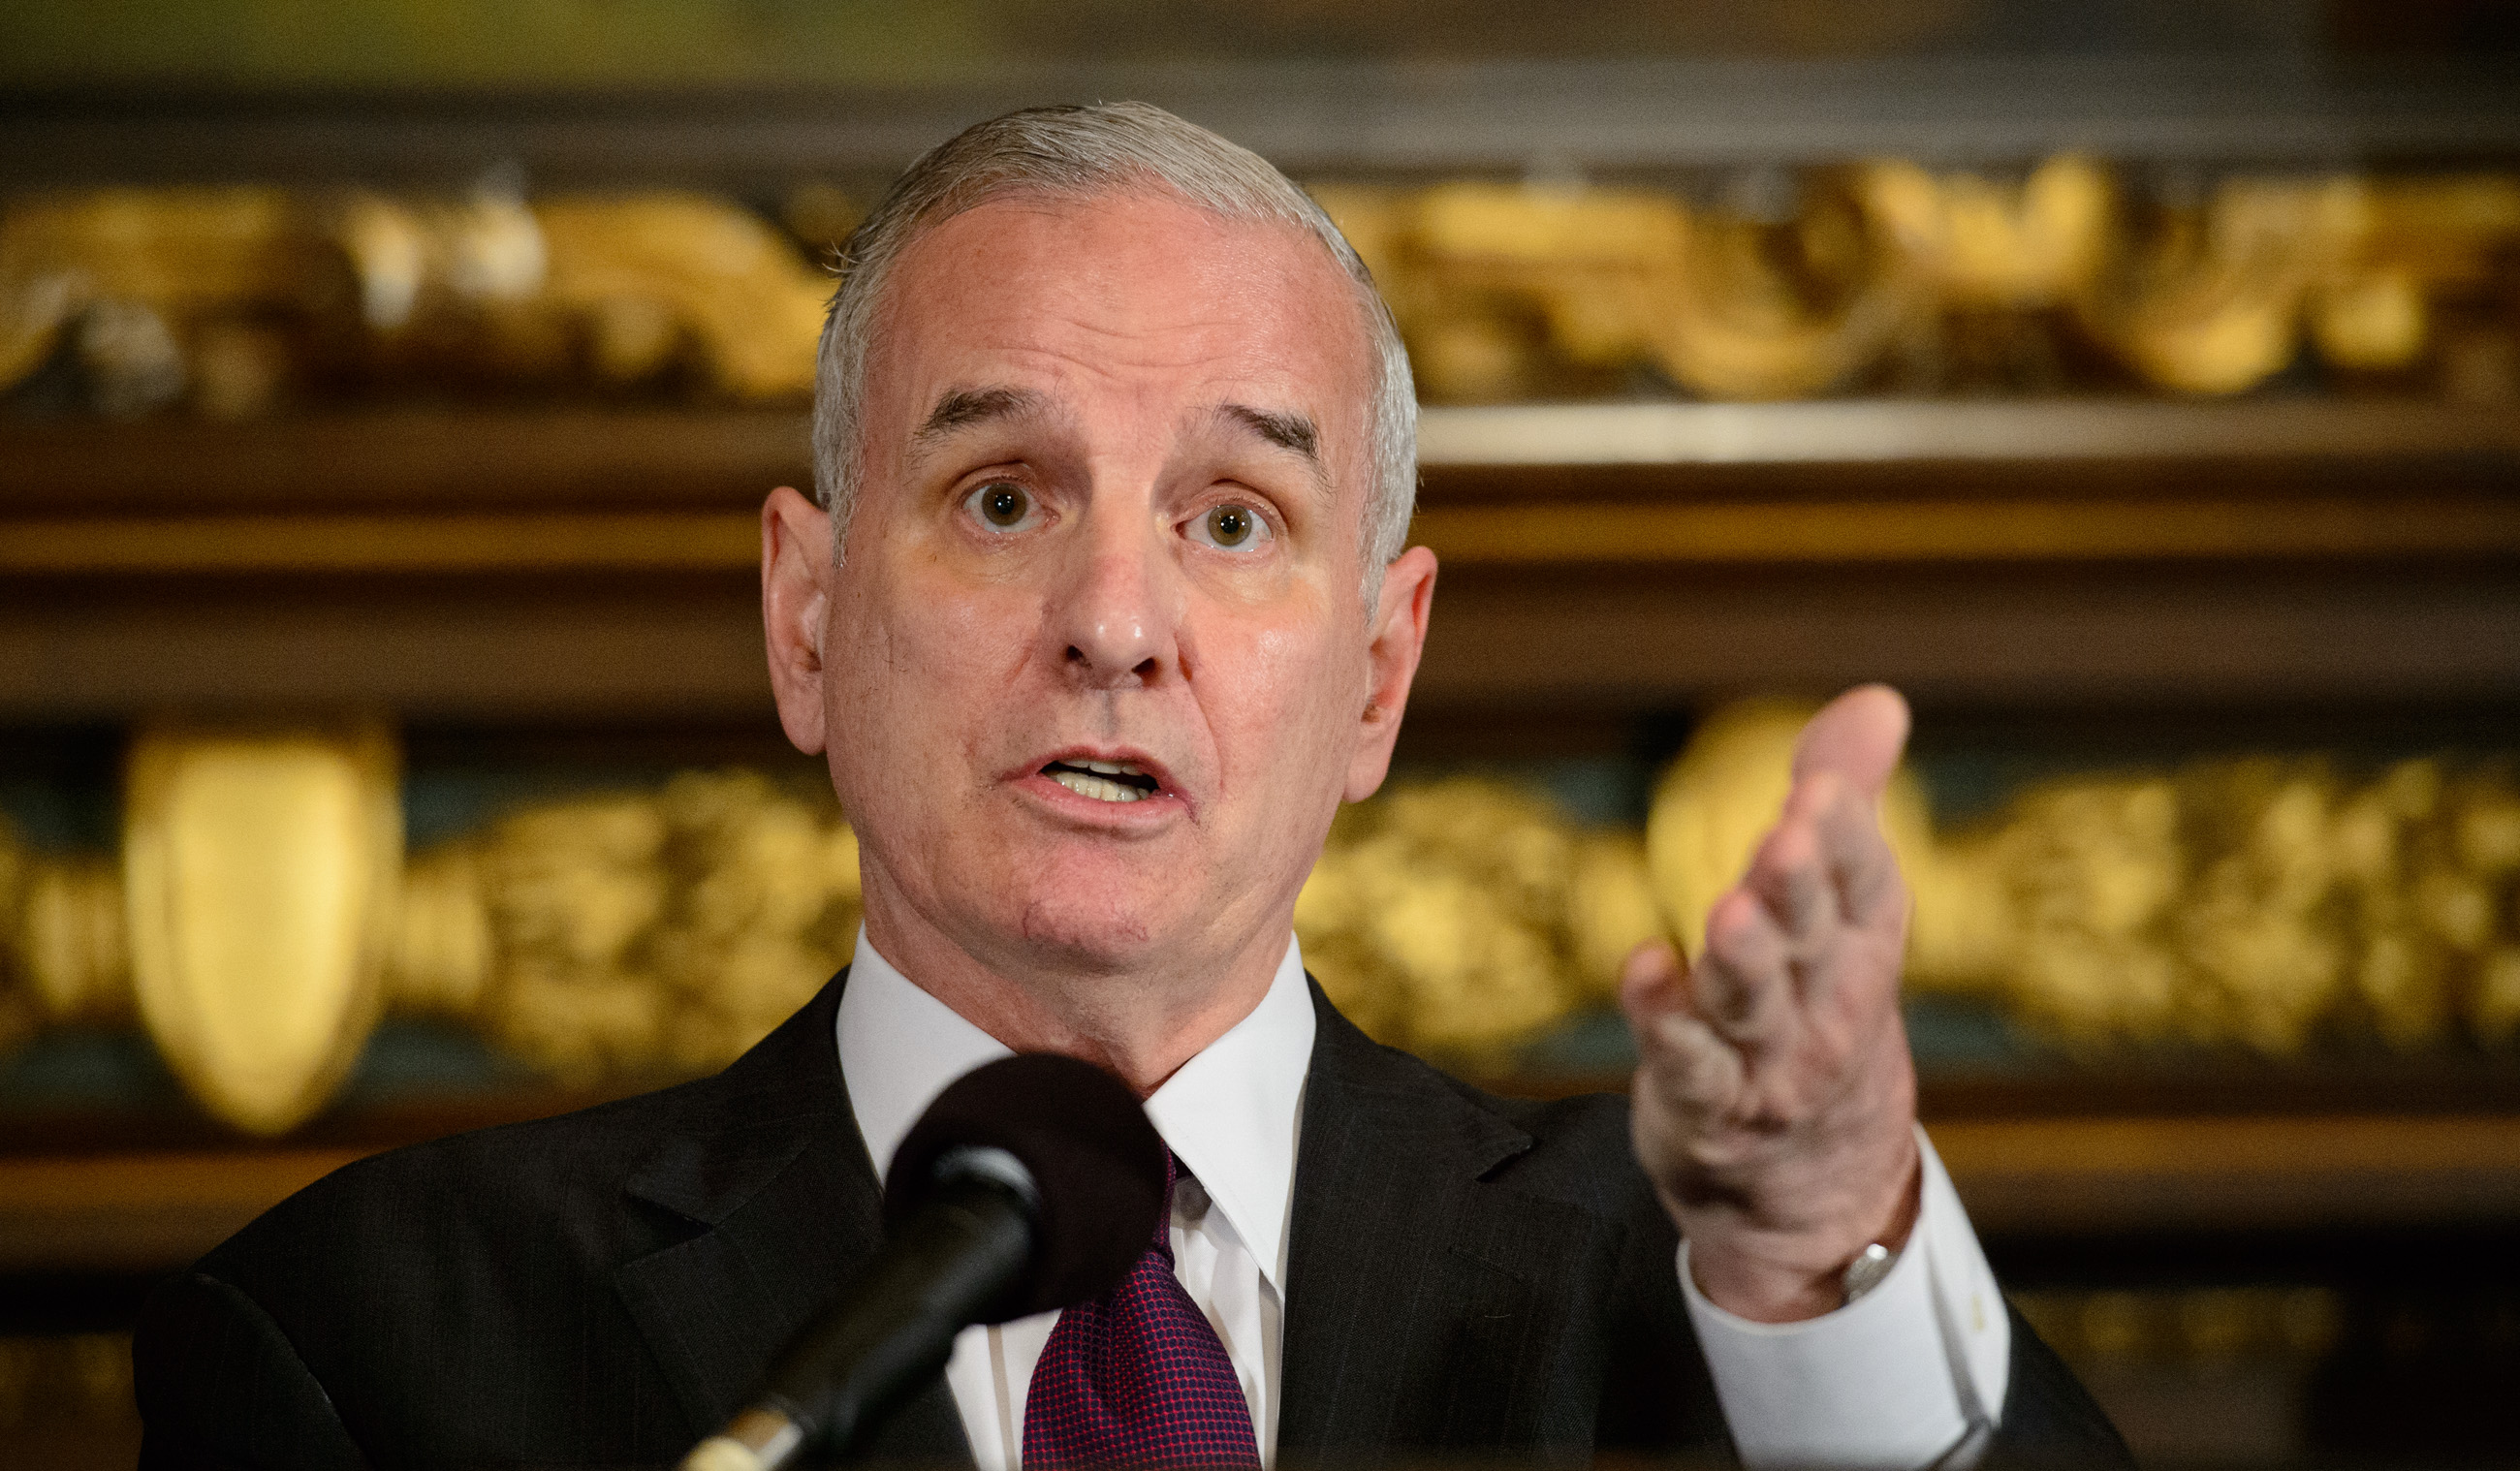 Gov. Mark Dayton on Monday // source: Glen Stubbe